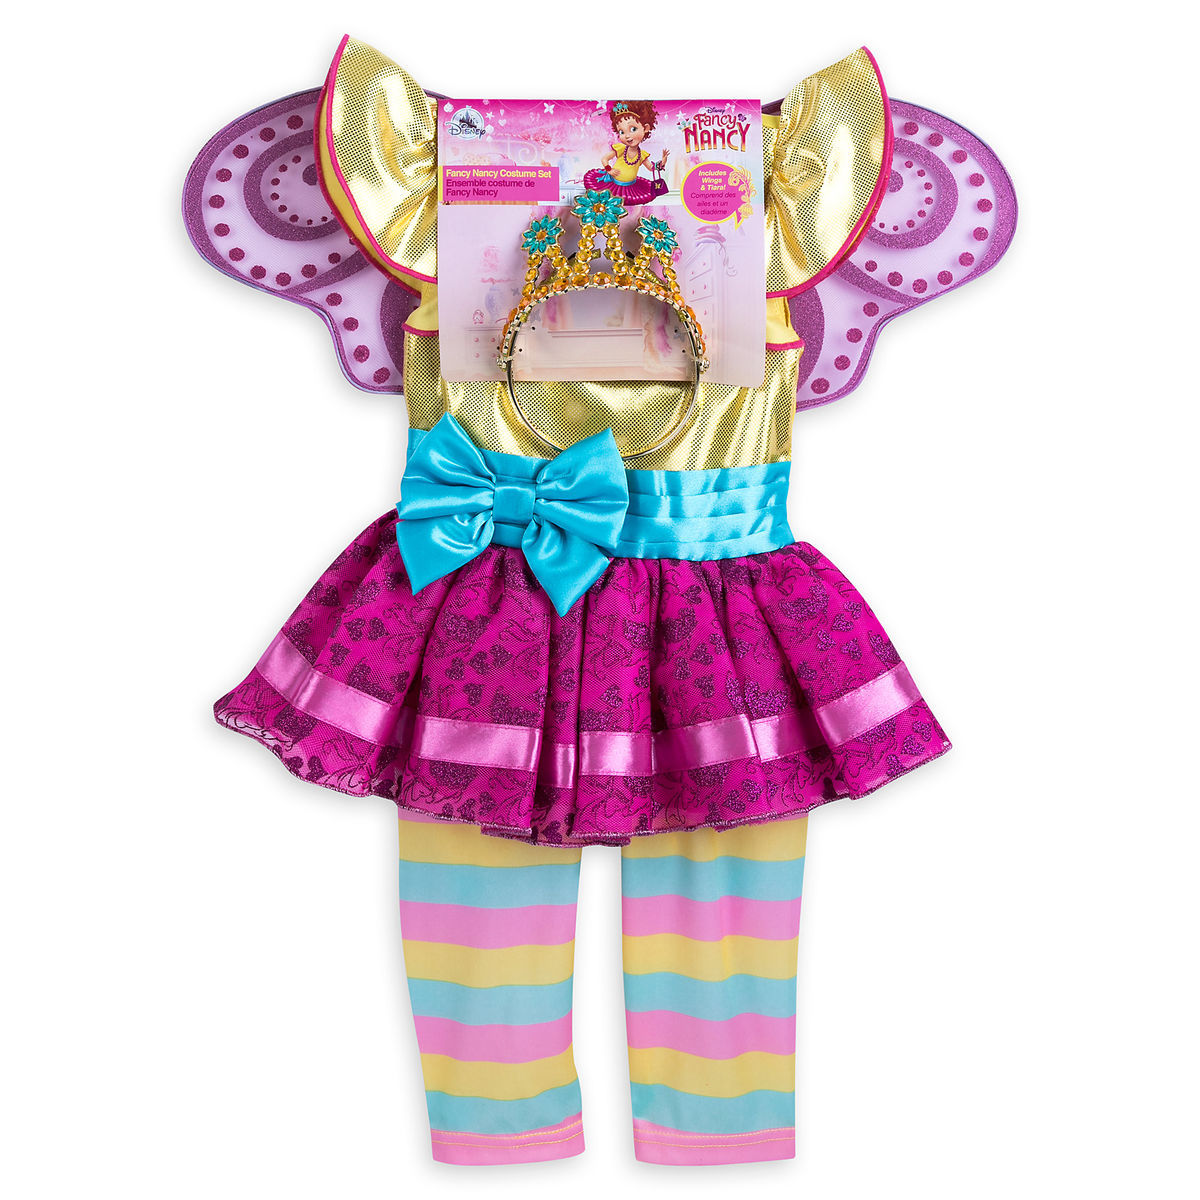 product image of fancy nancy costume set for kids 8